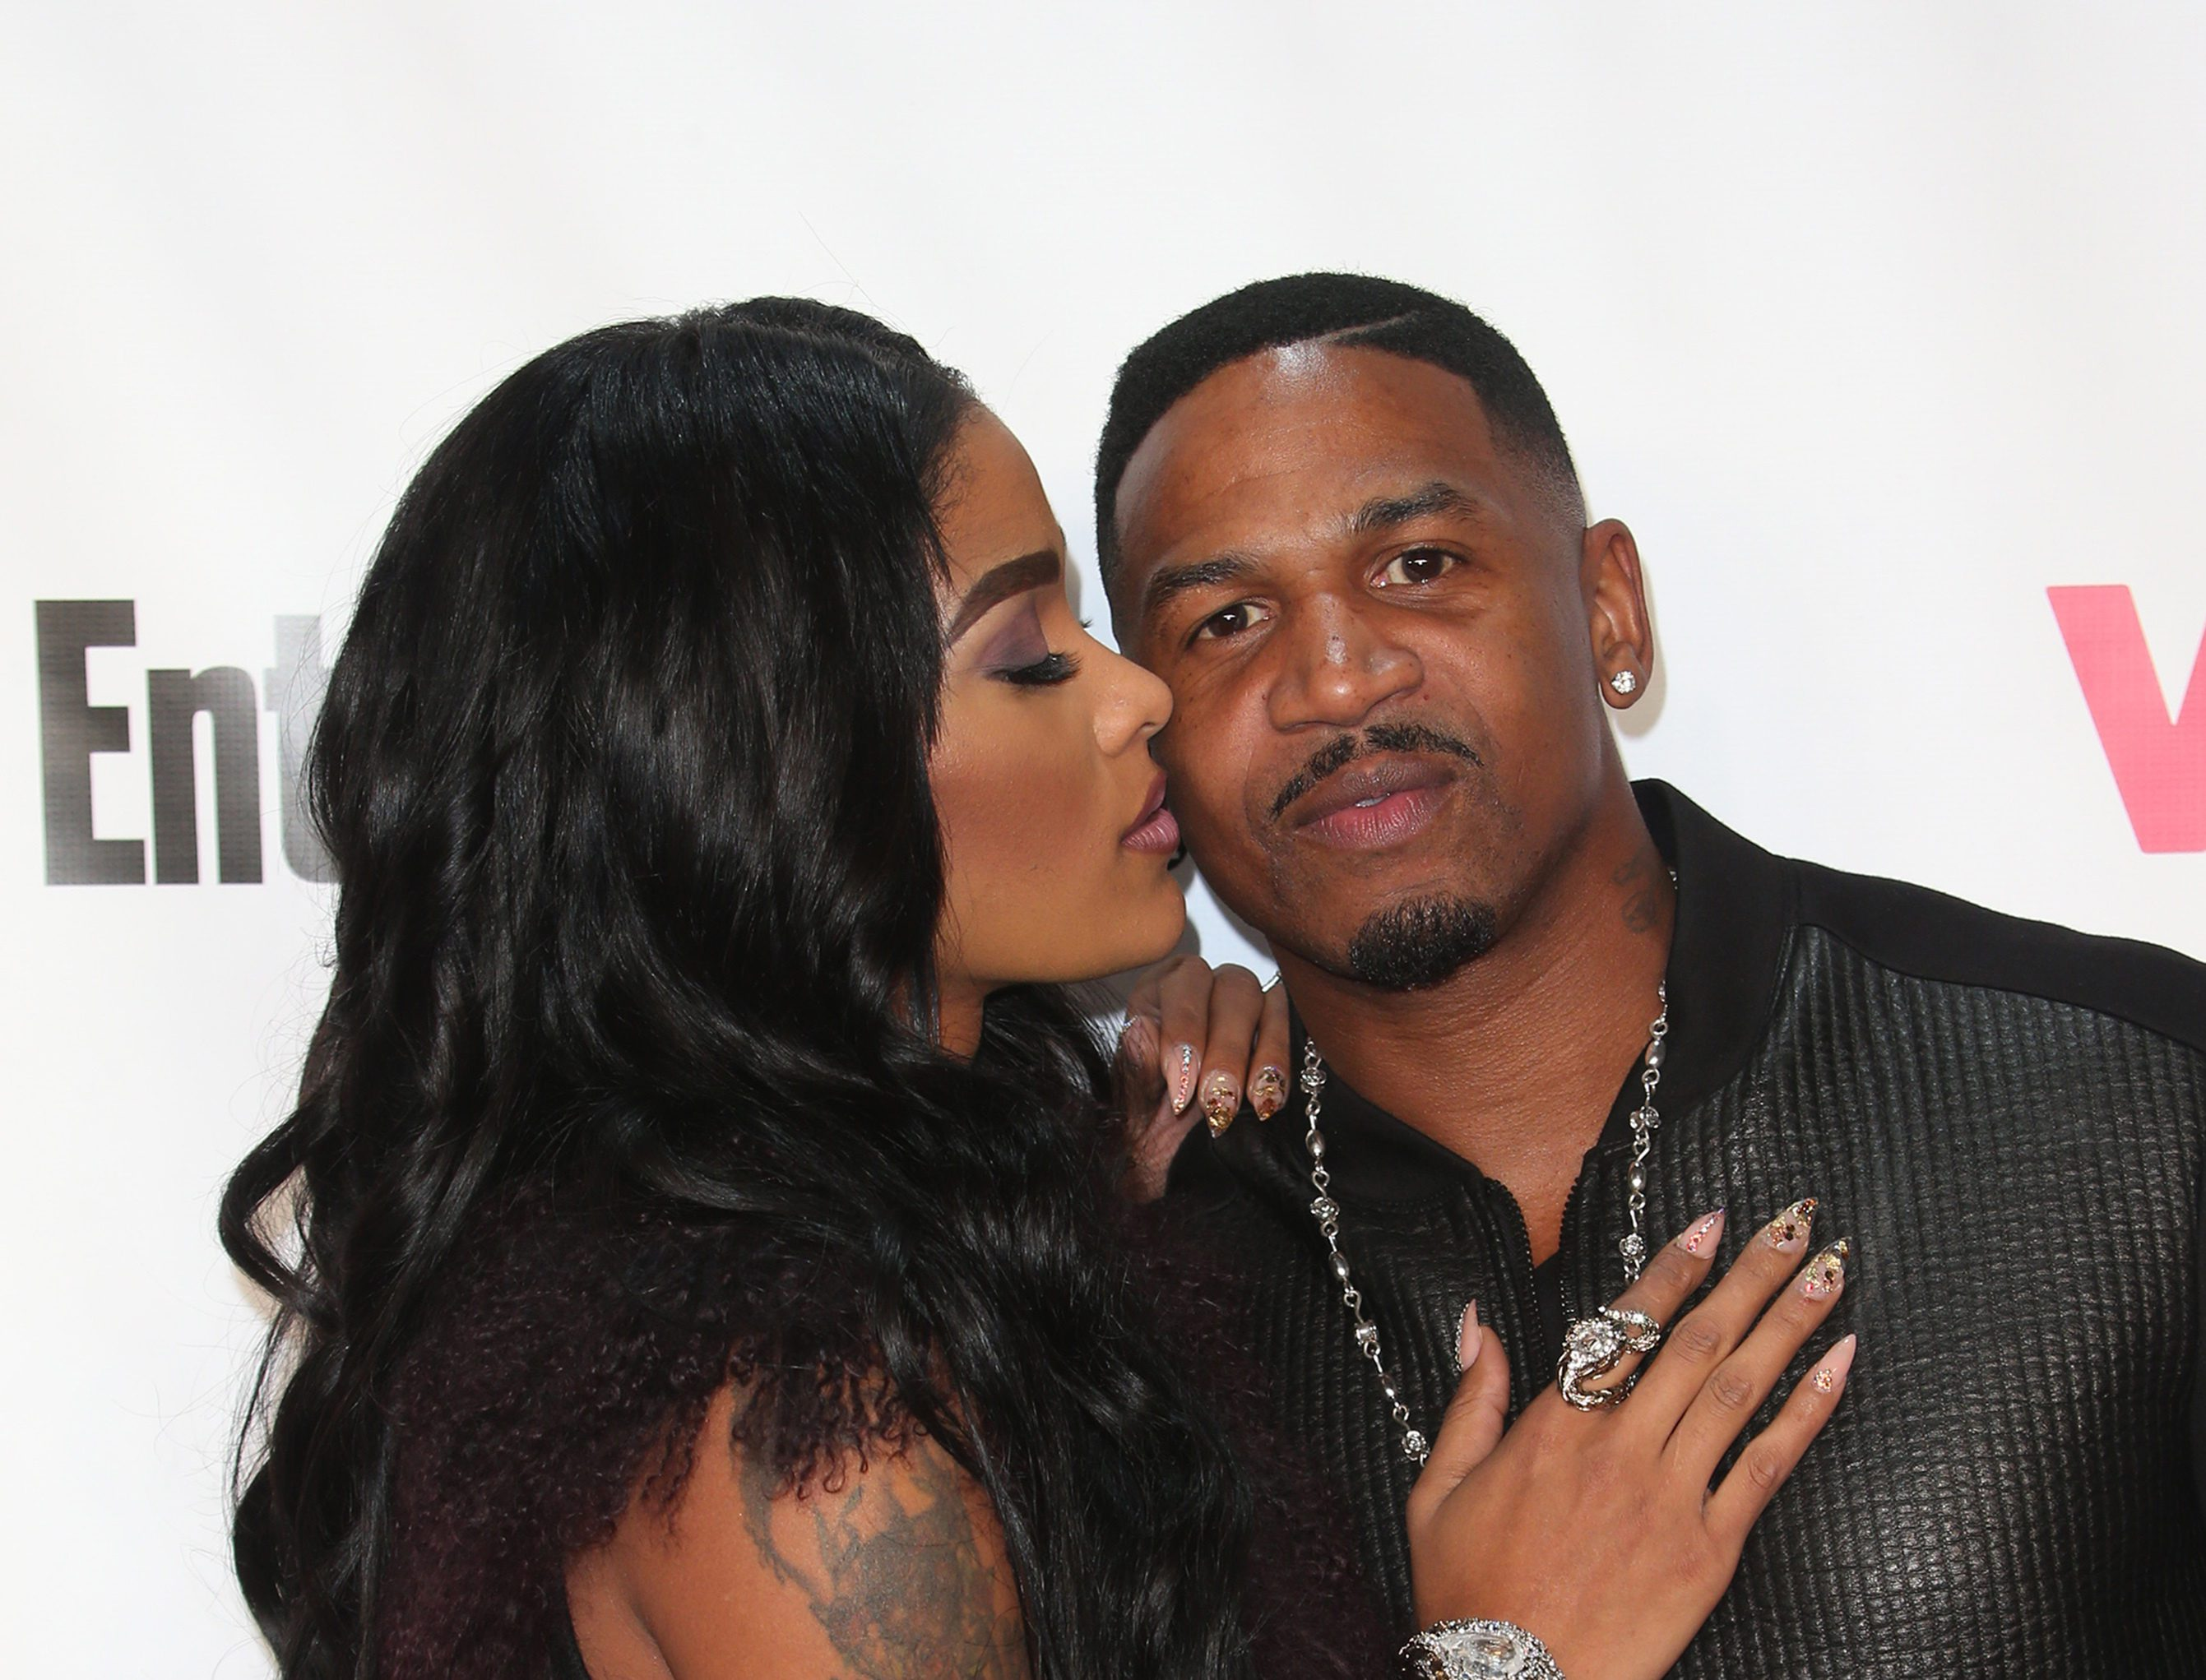 #CherryJuice: Stevie J and Joseline Put Each Other on Blast